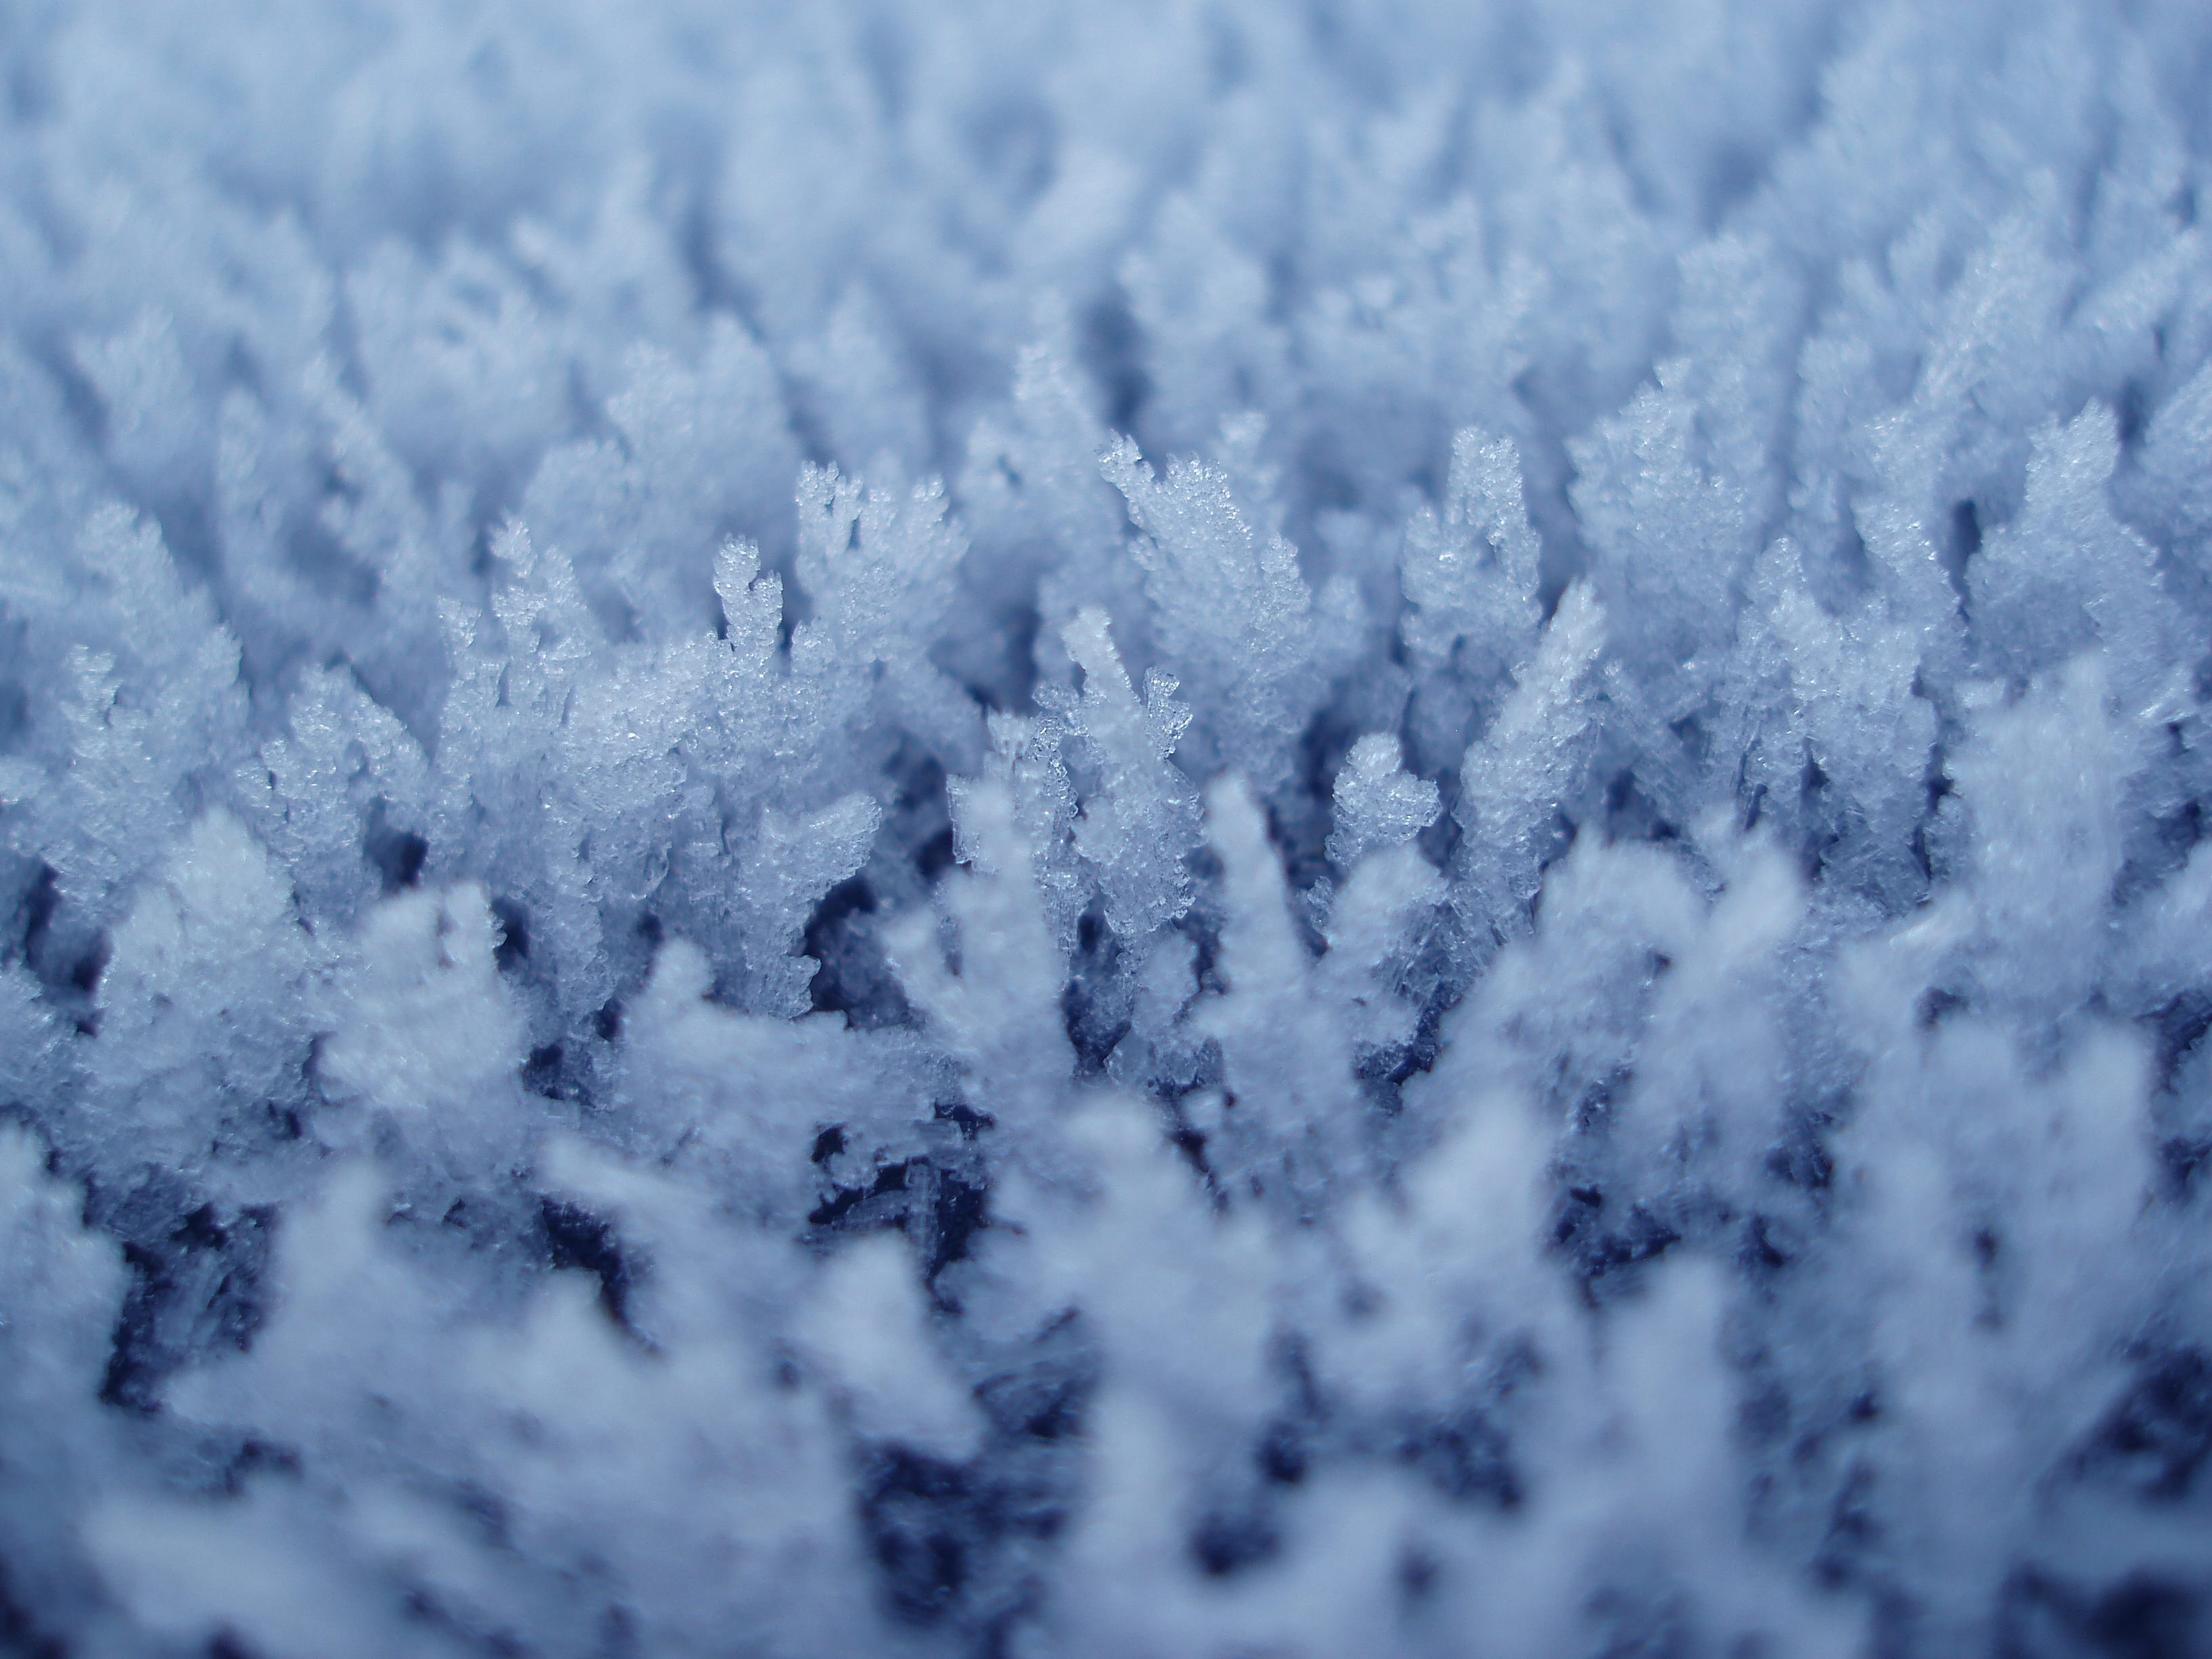 close-up on ice crystals | Free backgrounds and textures | Cr103.com